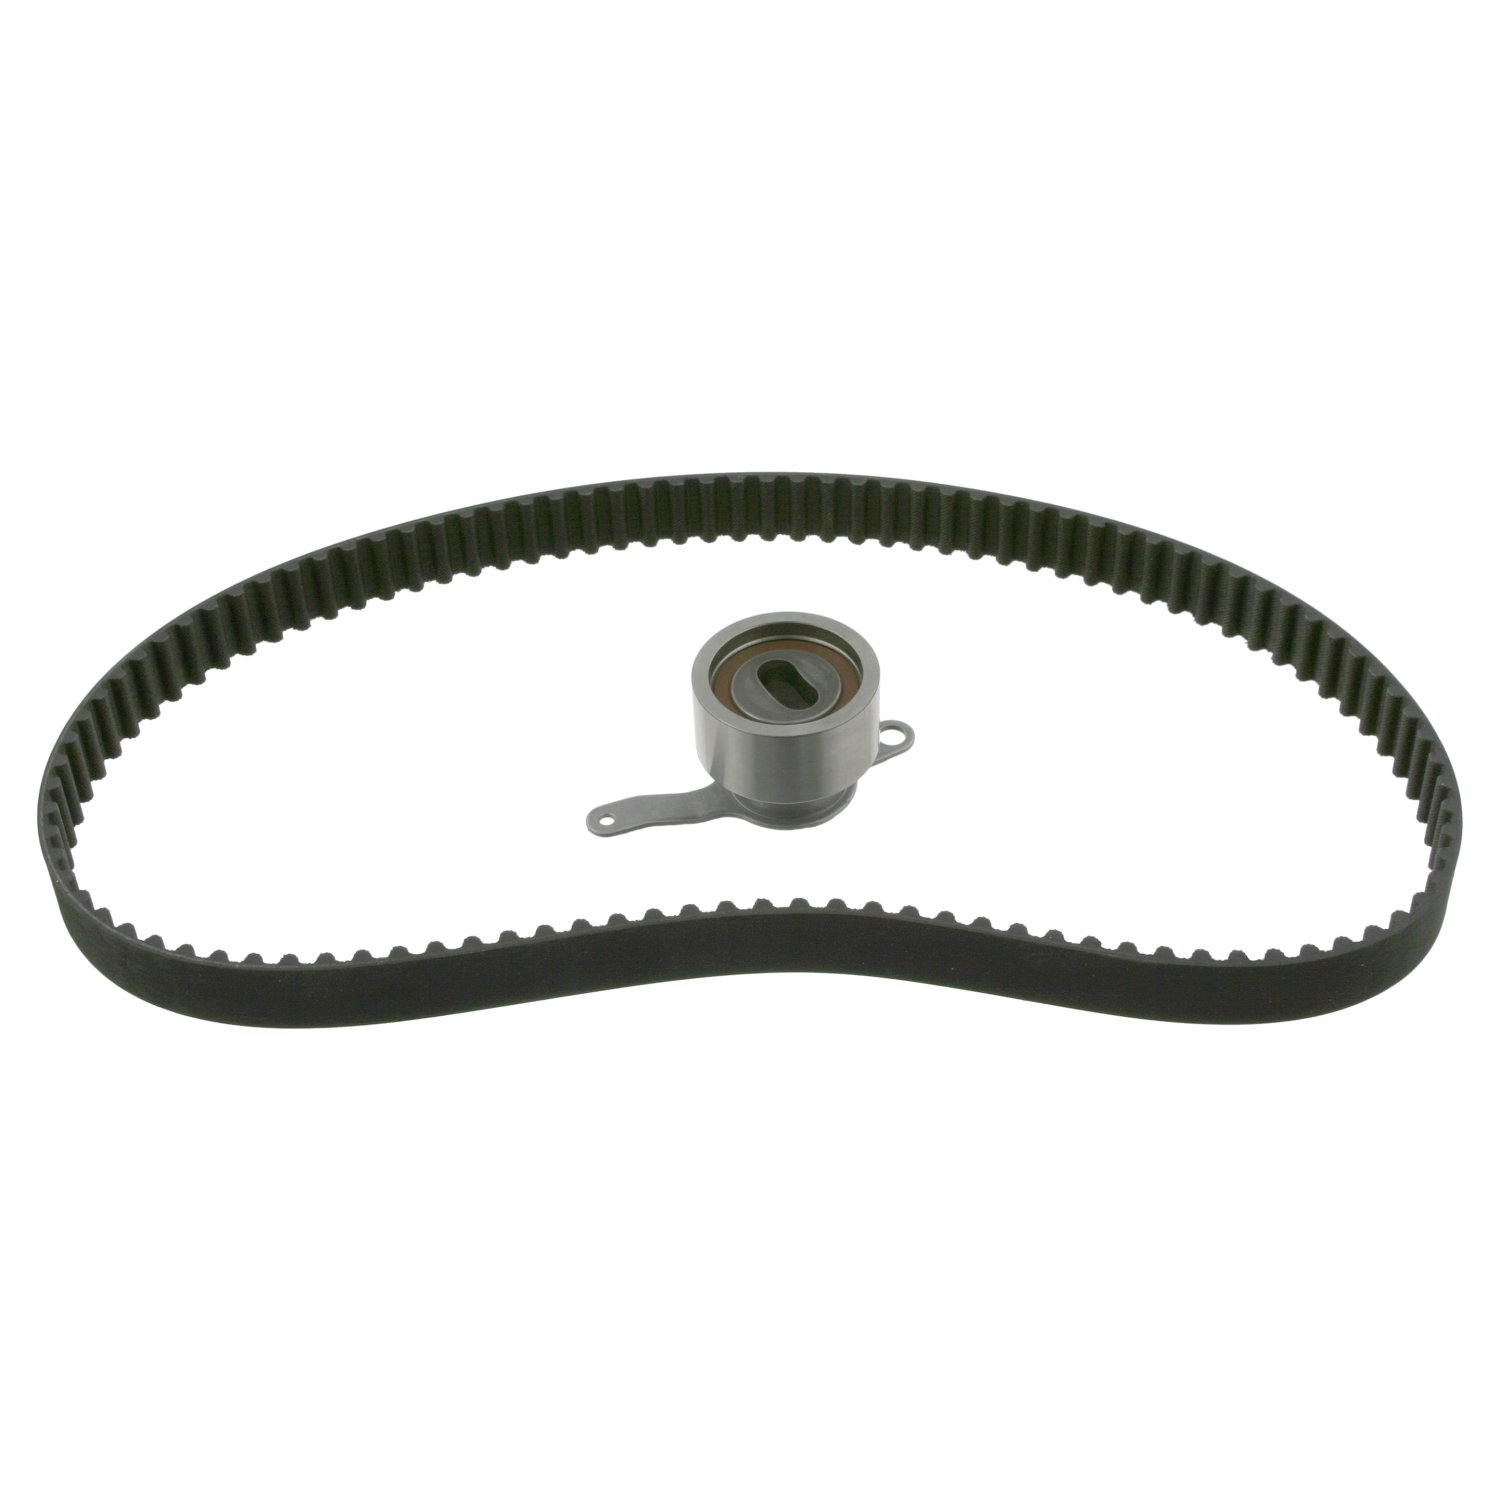 febi bilstein 24817 timing belt kit - Pack of 1